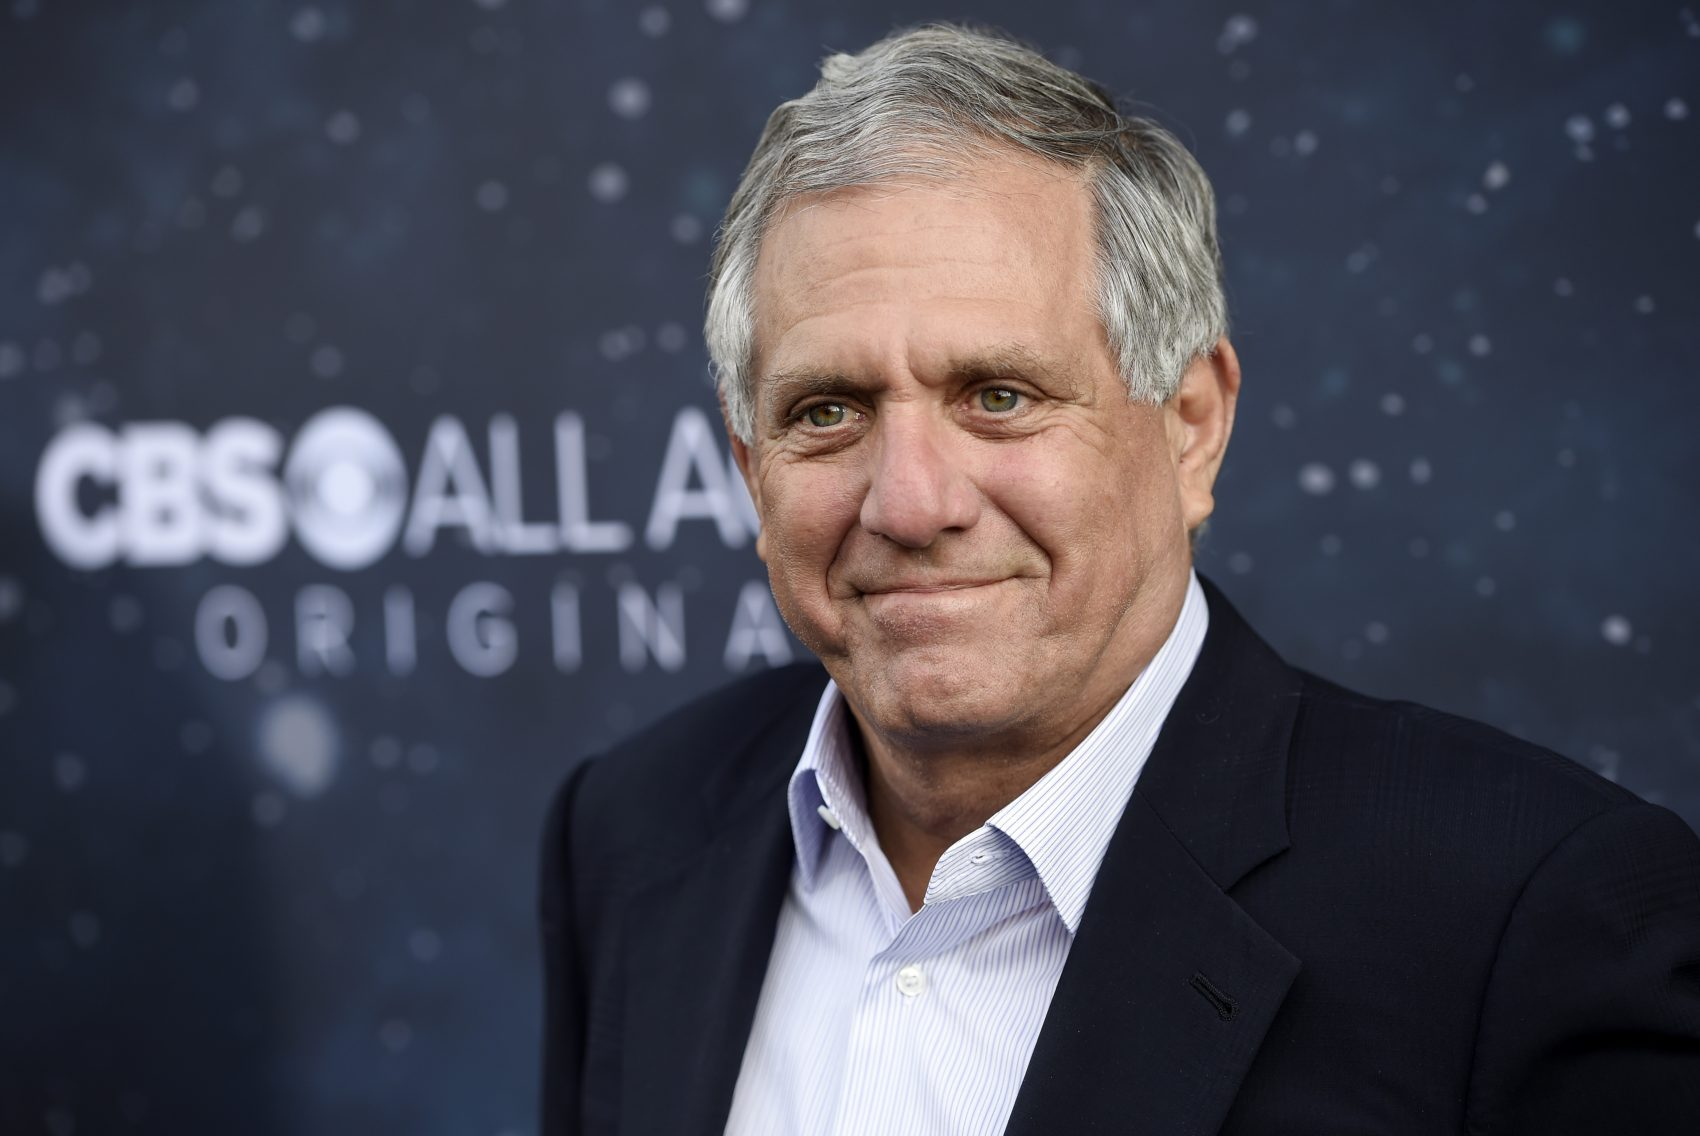 """In this Sept. 19, 2017, file photo, Les Moonves, chairman and CEO of CBS Corporation, poses at the premiere of the new television series """"Star Trek: Discovery"""" in Los Angeles. (Chris Pizzello/Invision/AP)"""